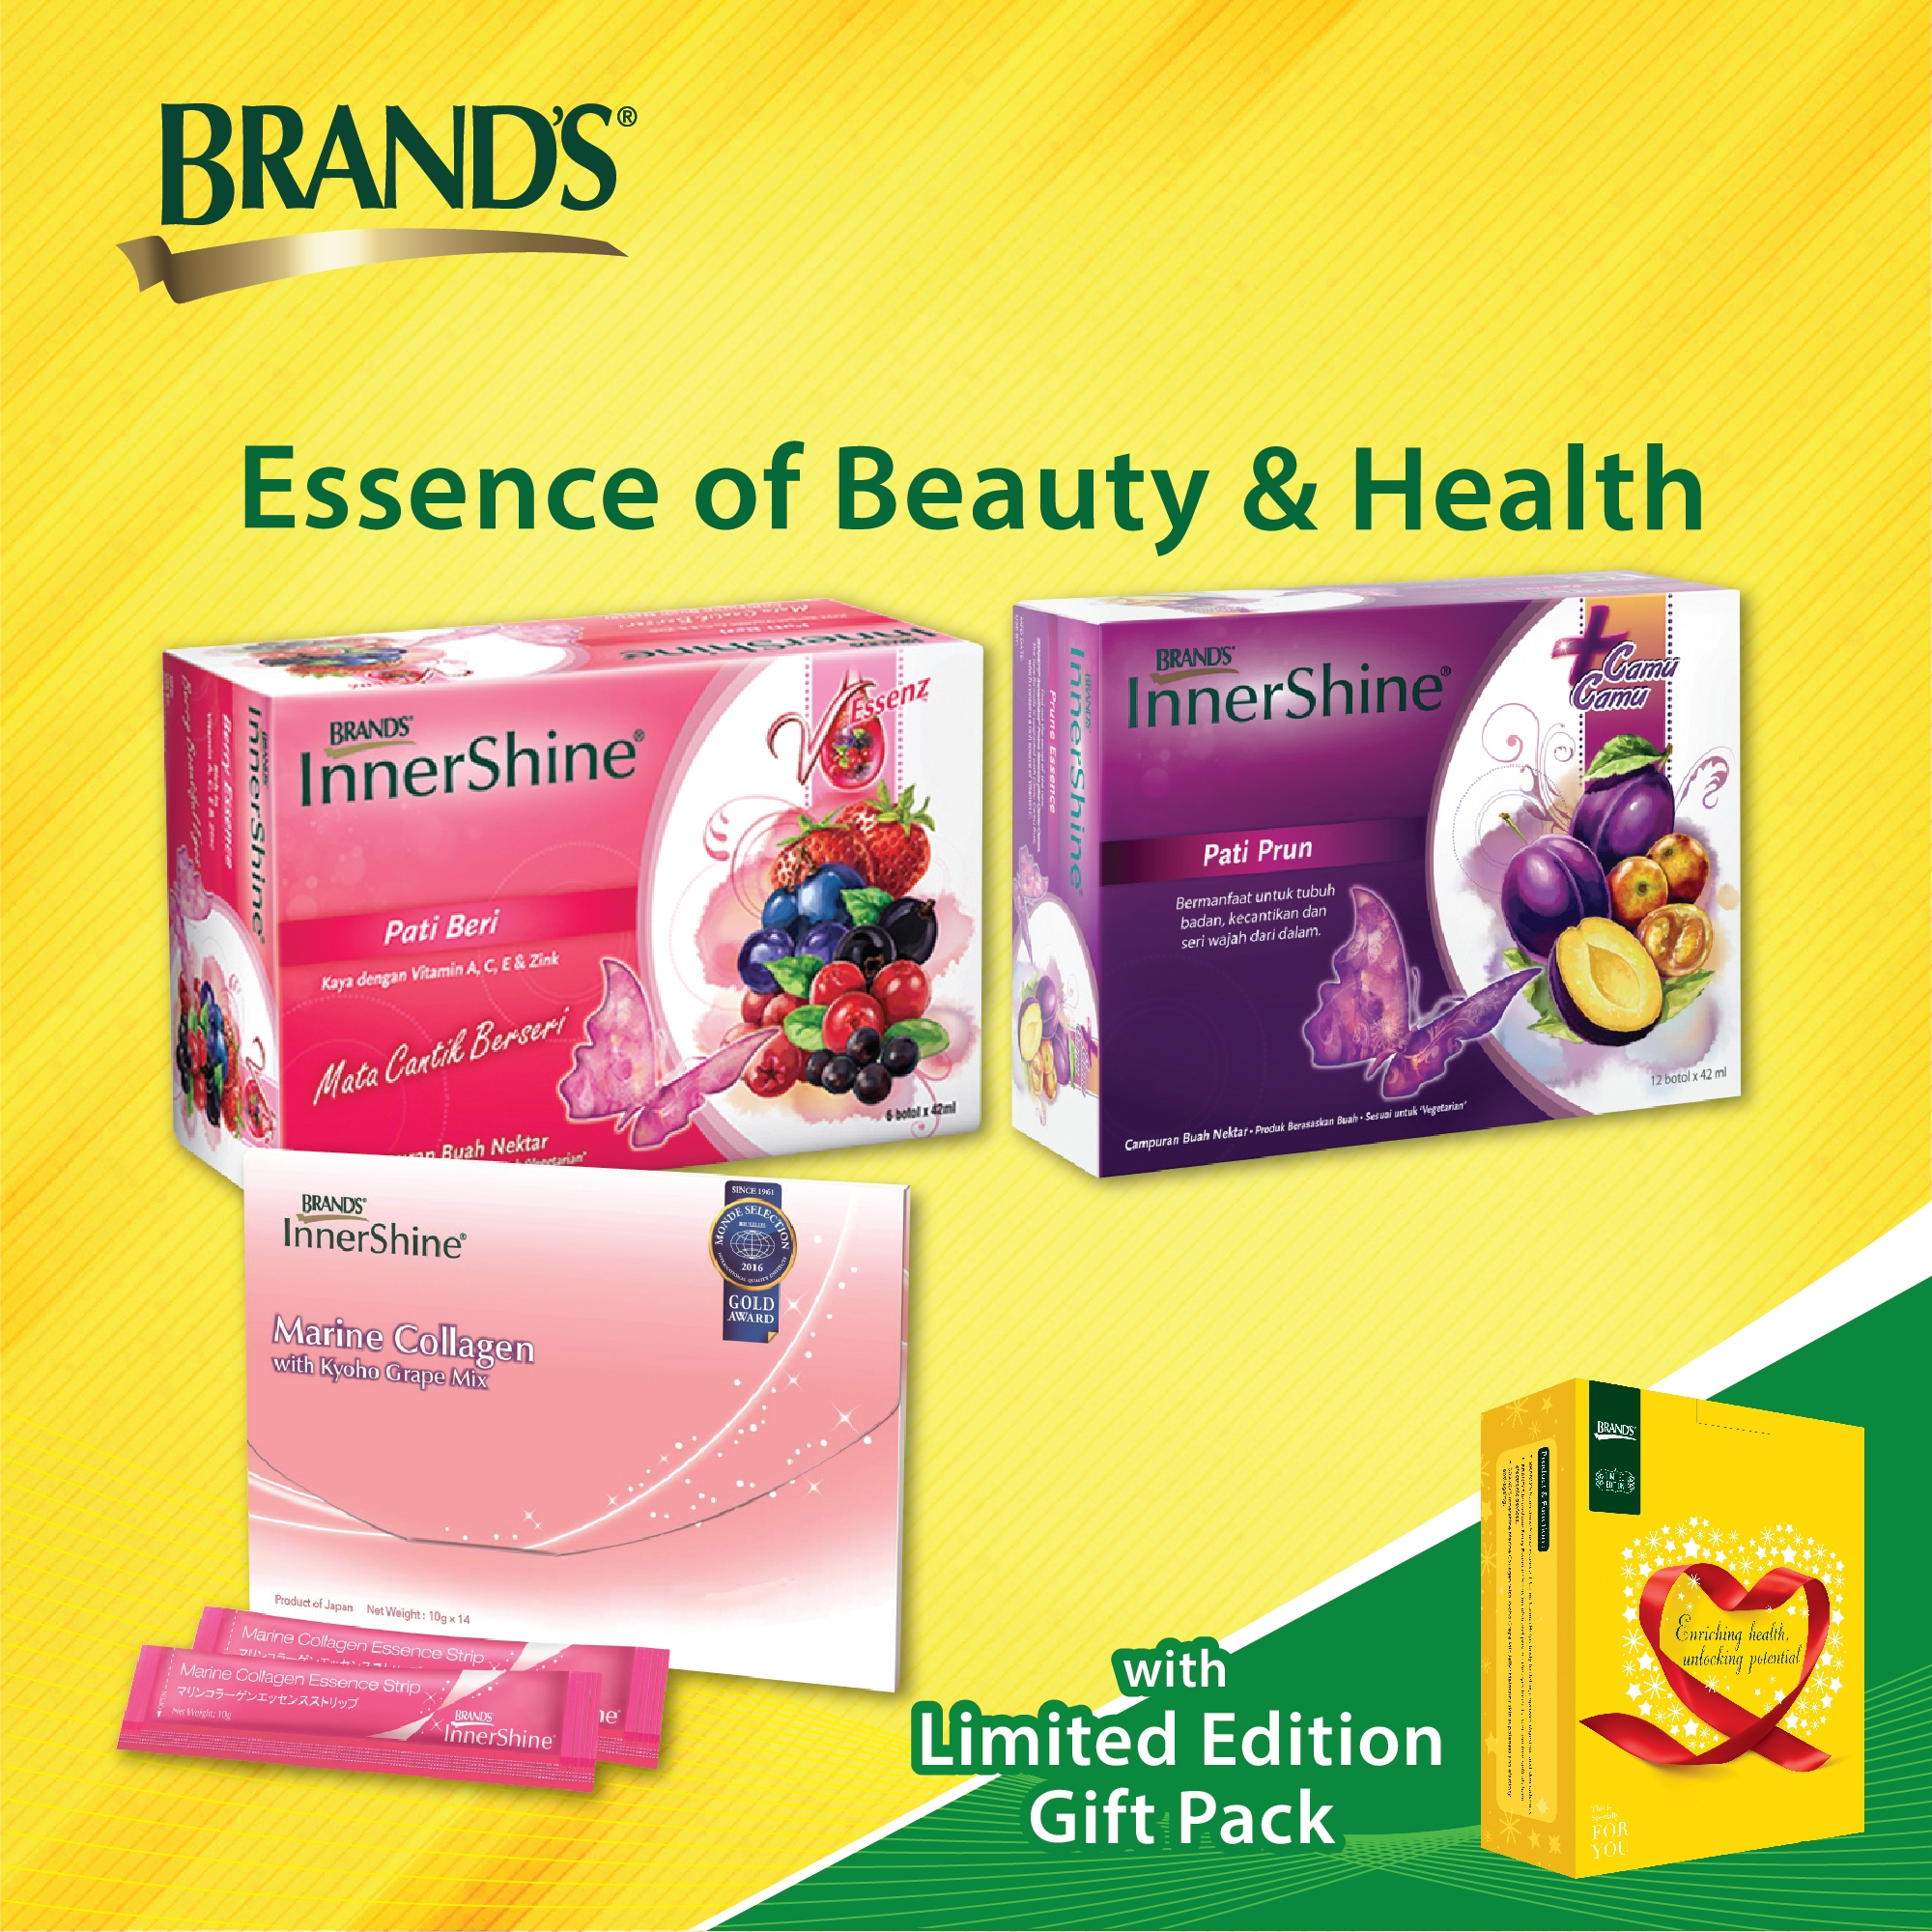 Essence of Beauty & Health